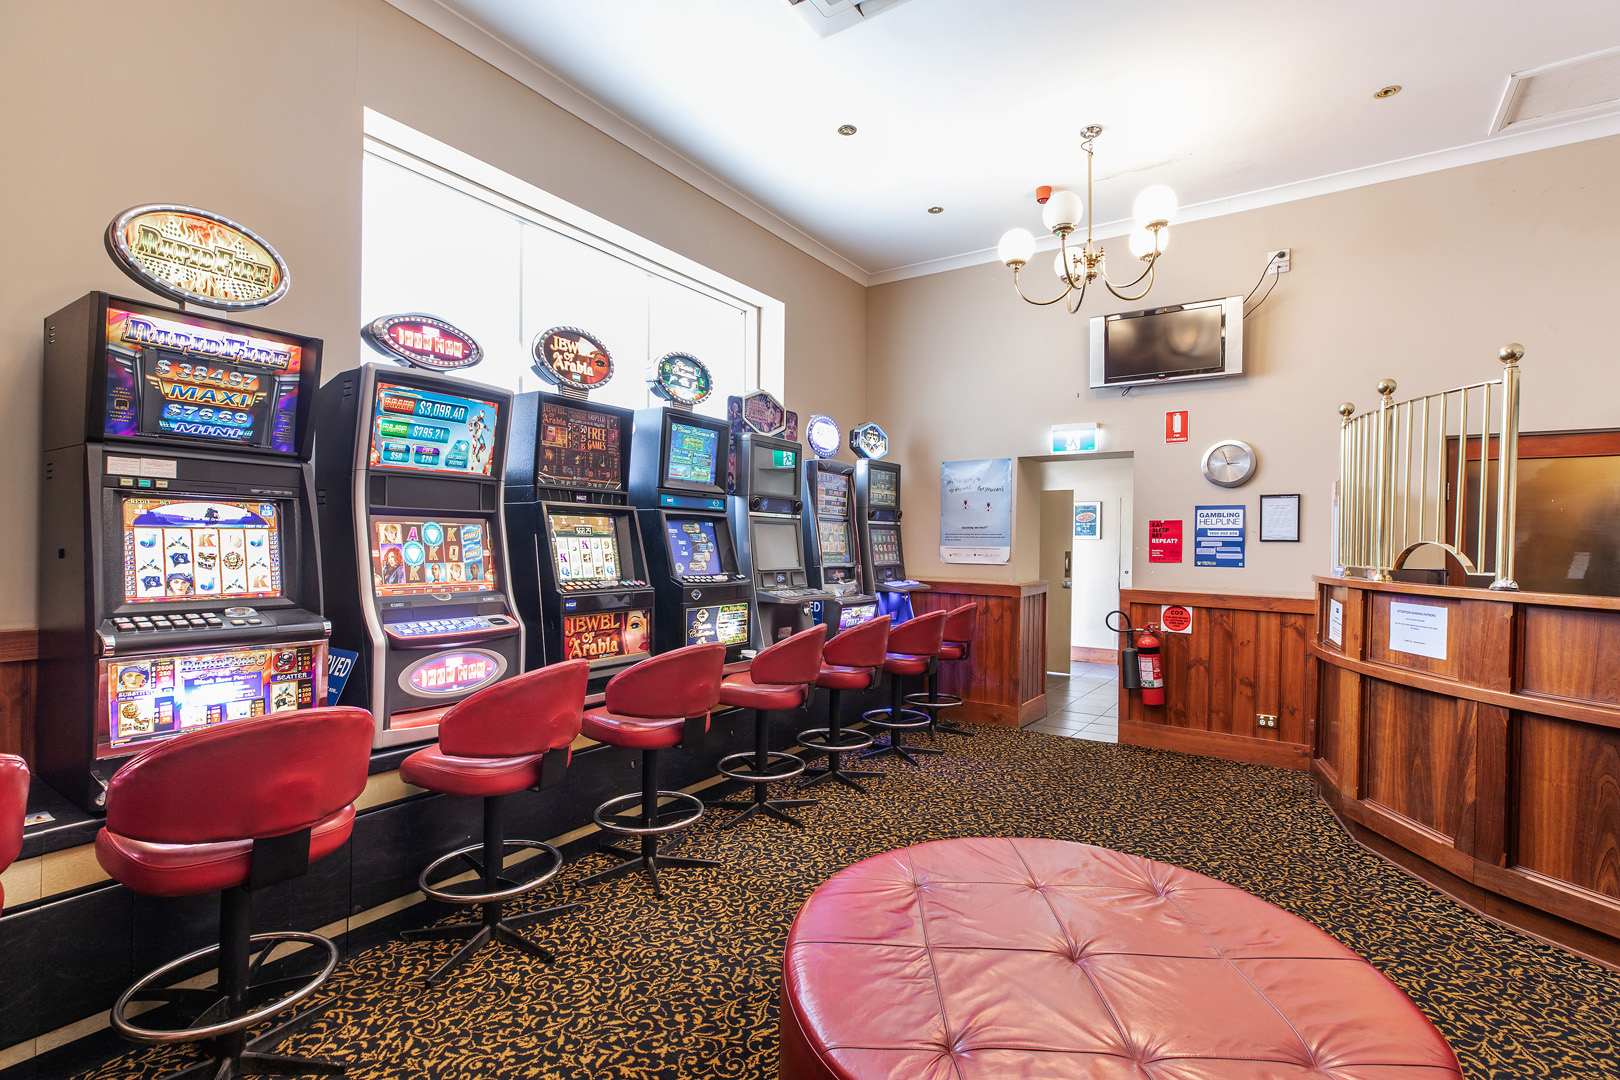 the-flinders-hotel-motel-gaming-room-pokies-seats